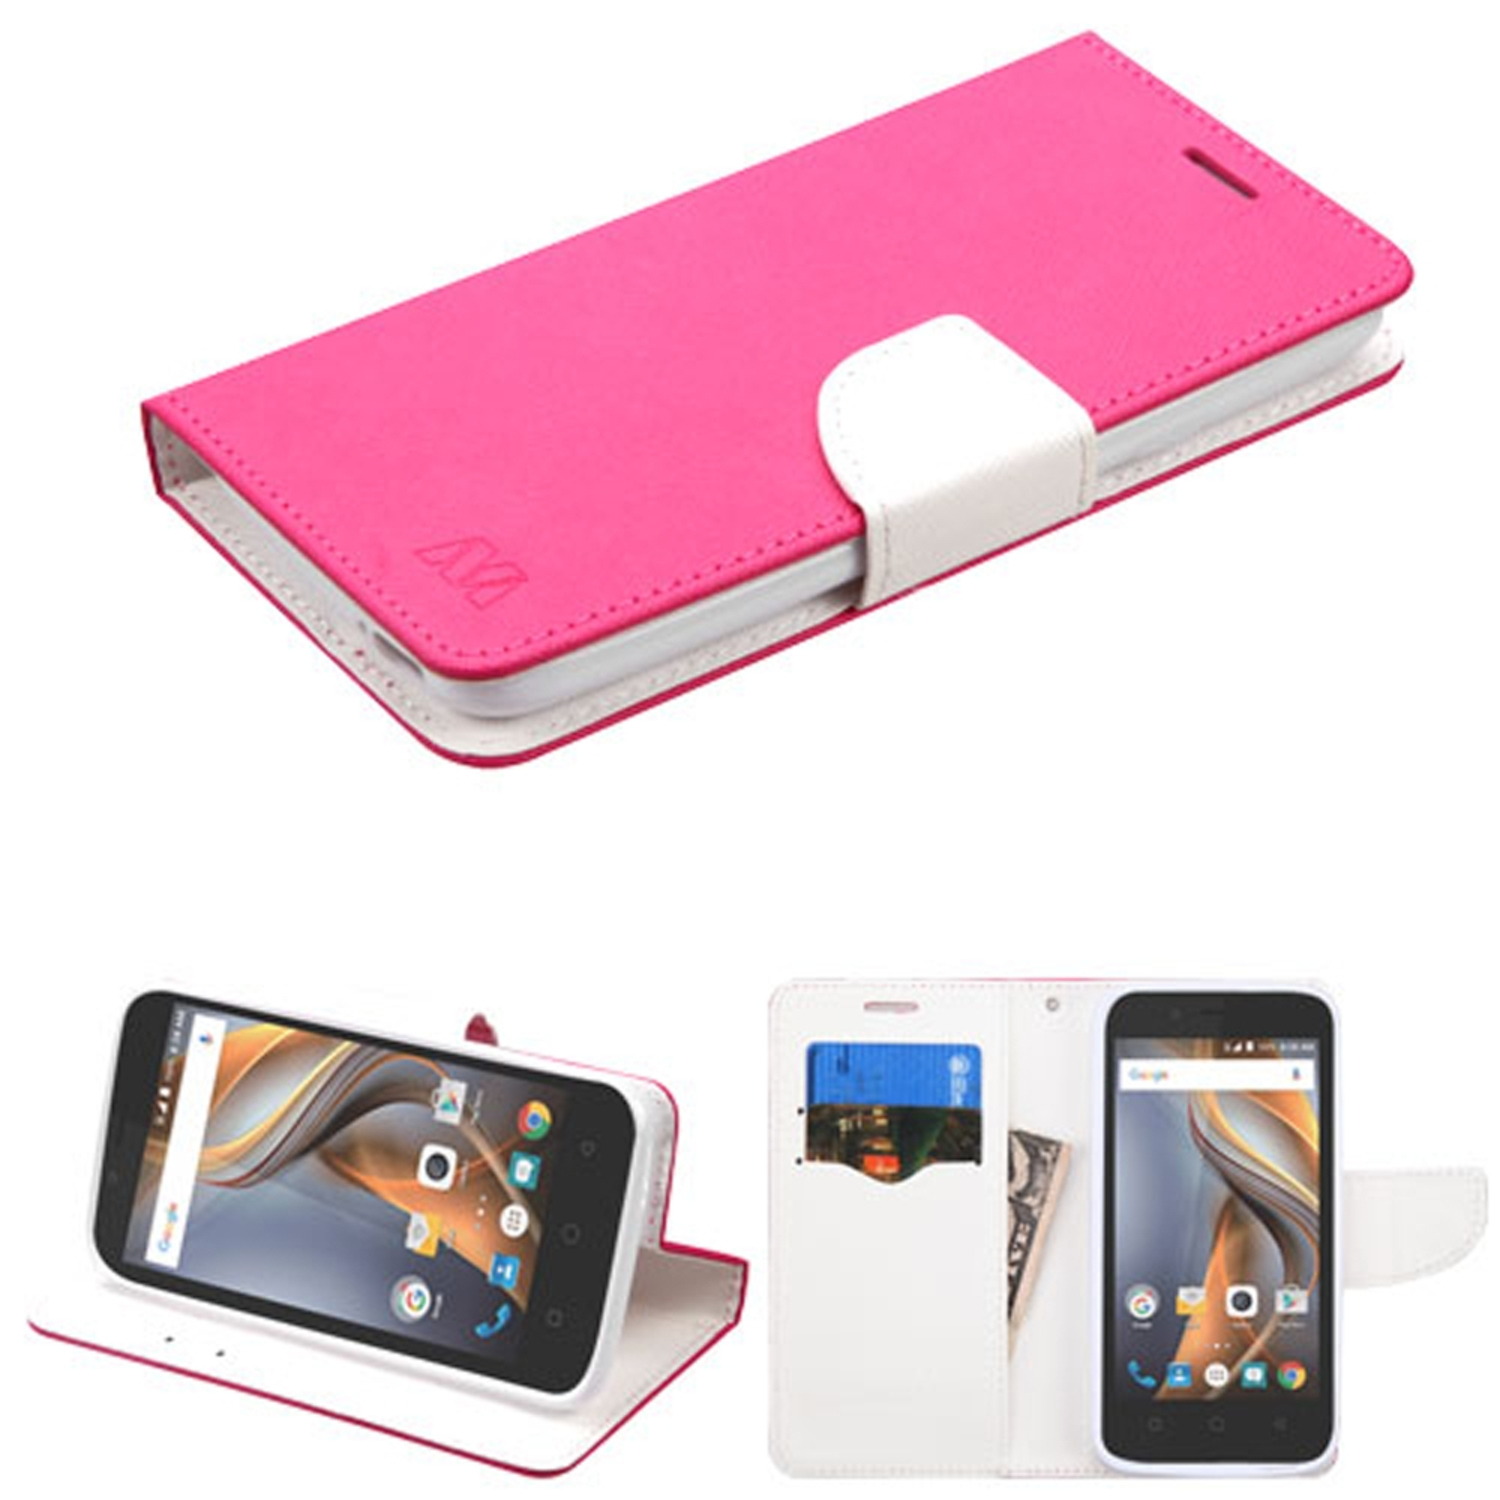 Insten Book-Style Leather Fabric Cover Case w/stand/card holder For Coolpad Catalyst - Hot Pink/White